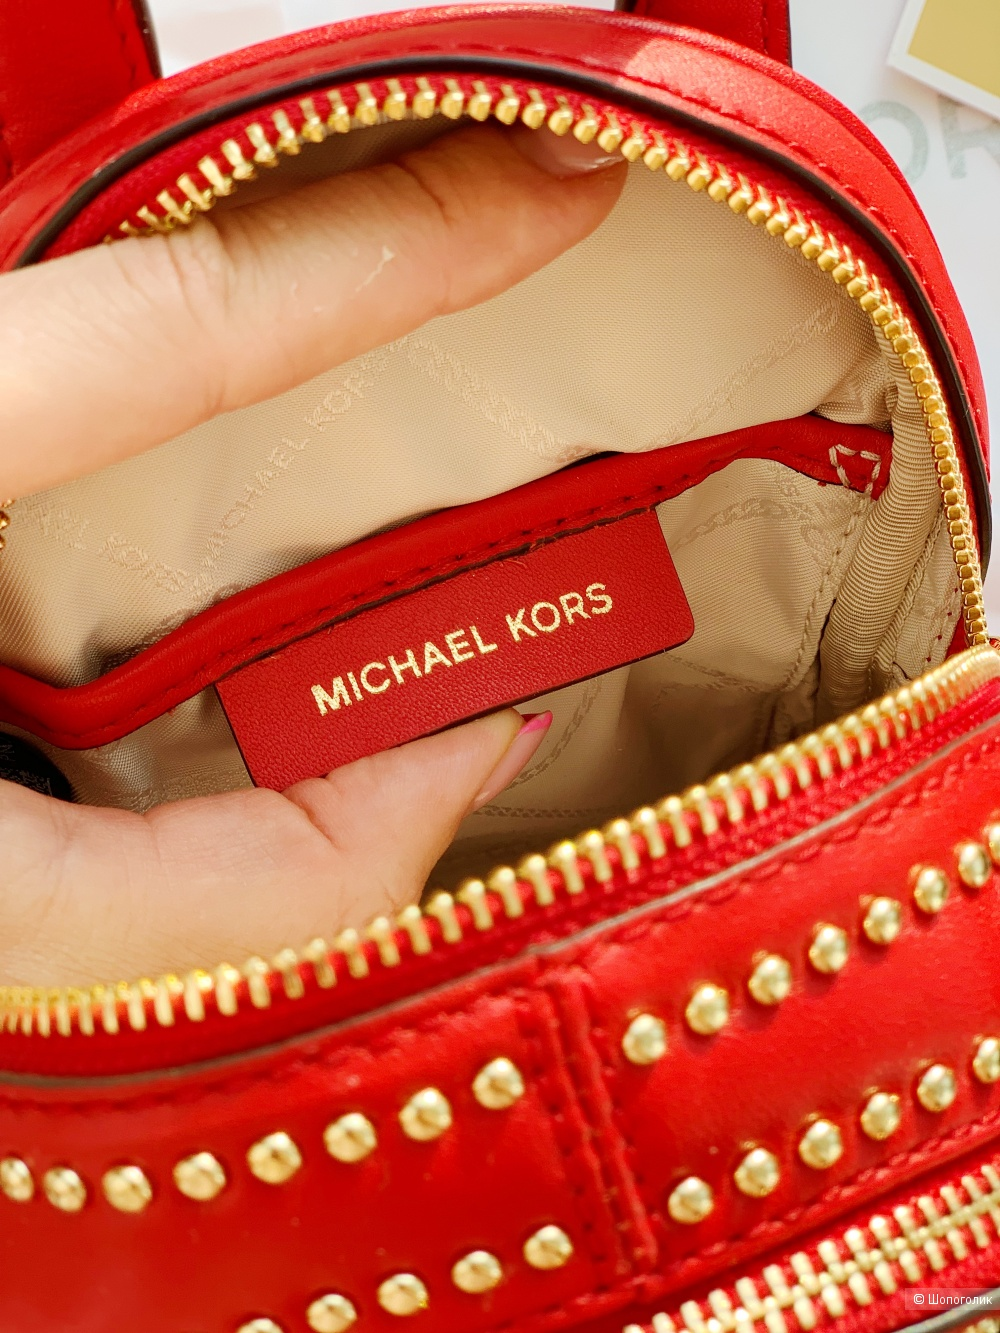 Michael kors mini рюкзак